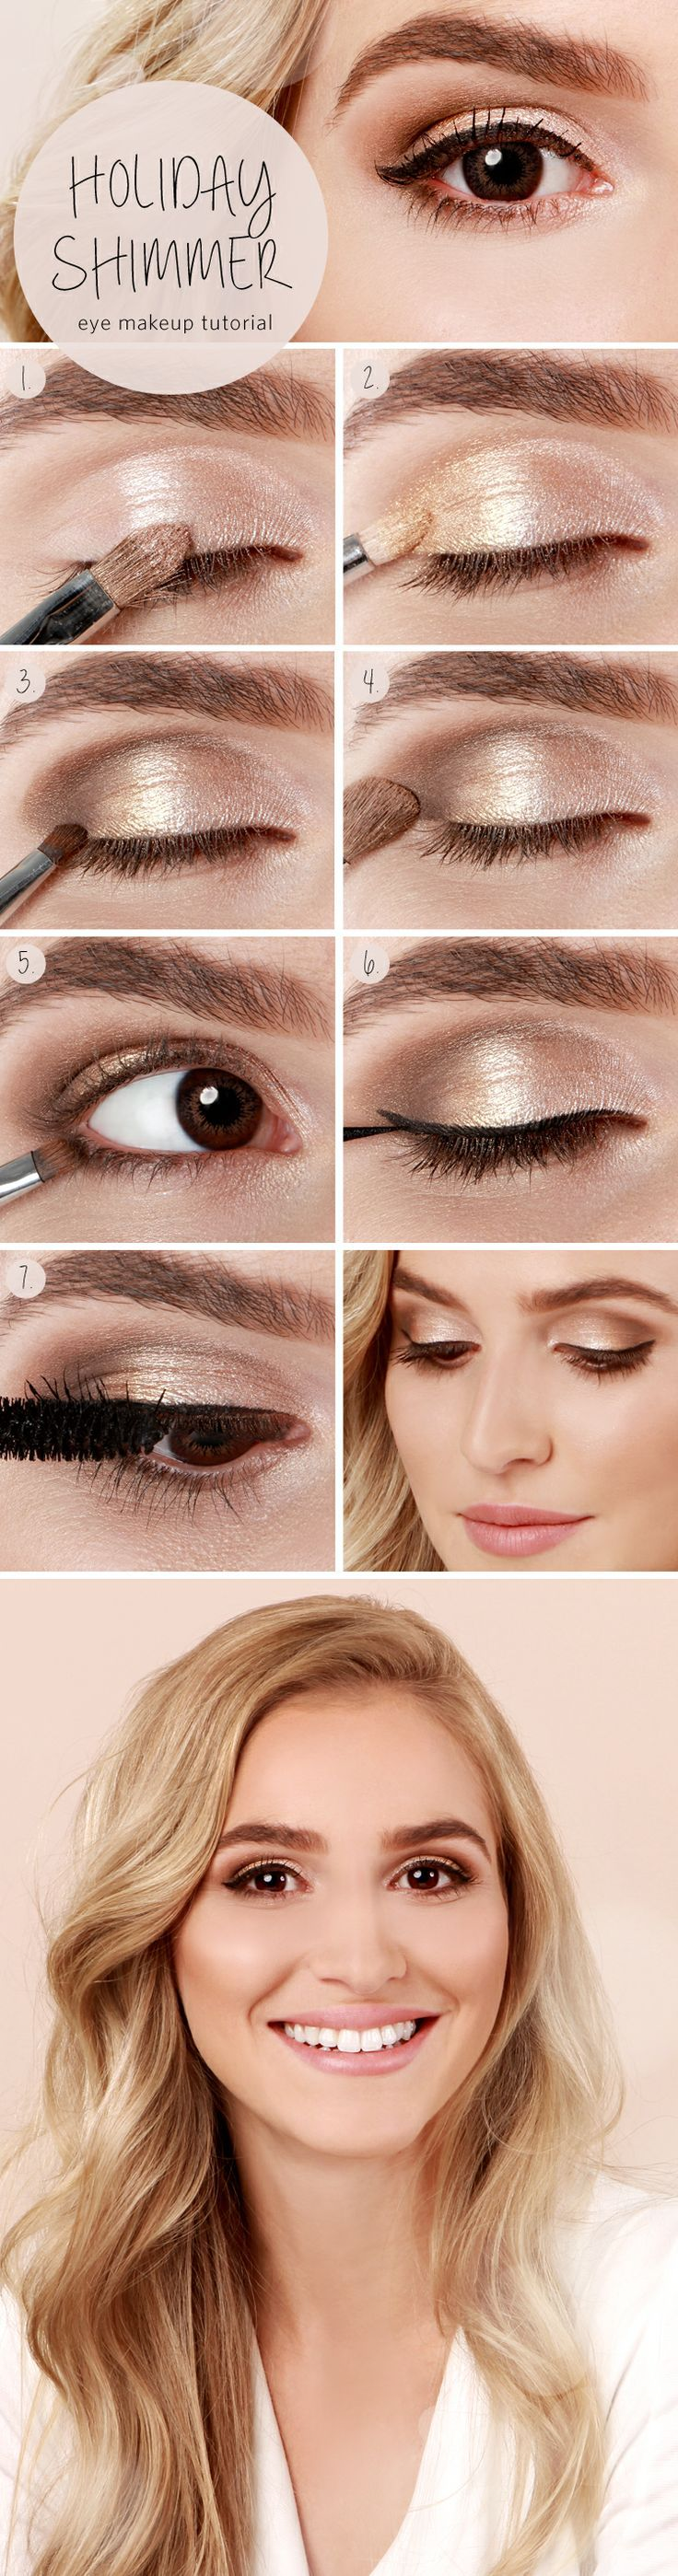 Holiday Shimmer Eye Tutorial http://sulia.com/my_thoughts/924d1112-a05c-4e8a-b04b-fe11b8af1043/?pinner=125515443